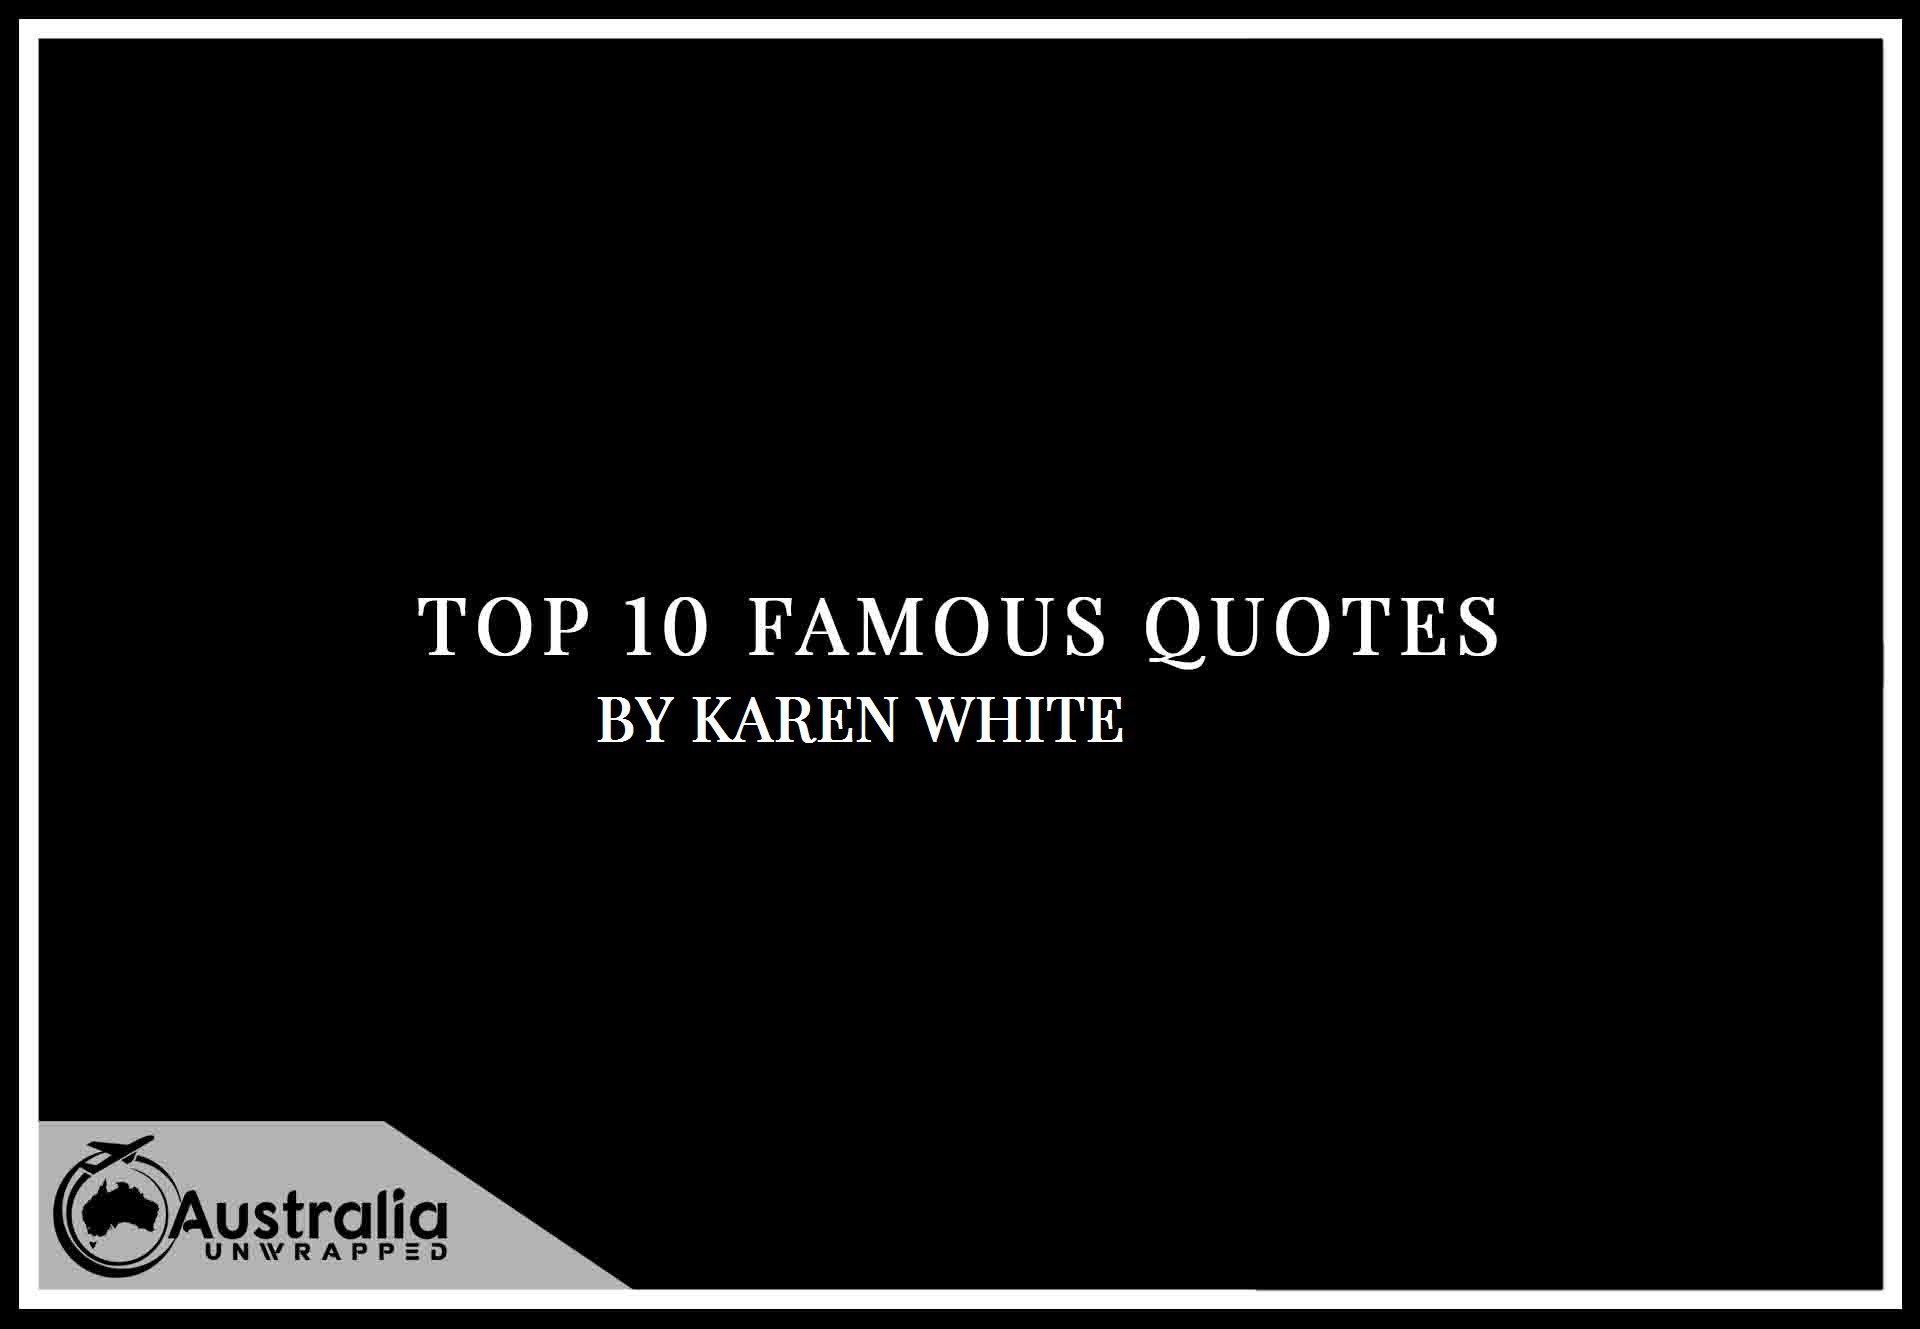 Karen White's Top 10 Popular and Famous Quotes